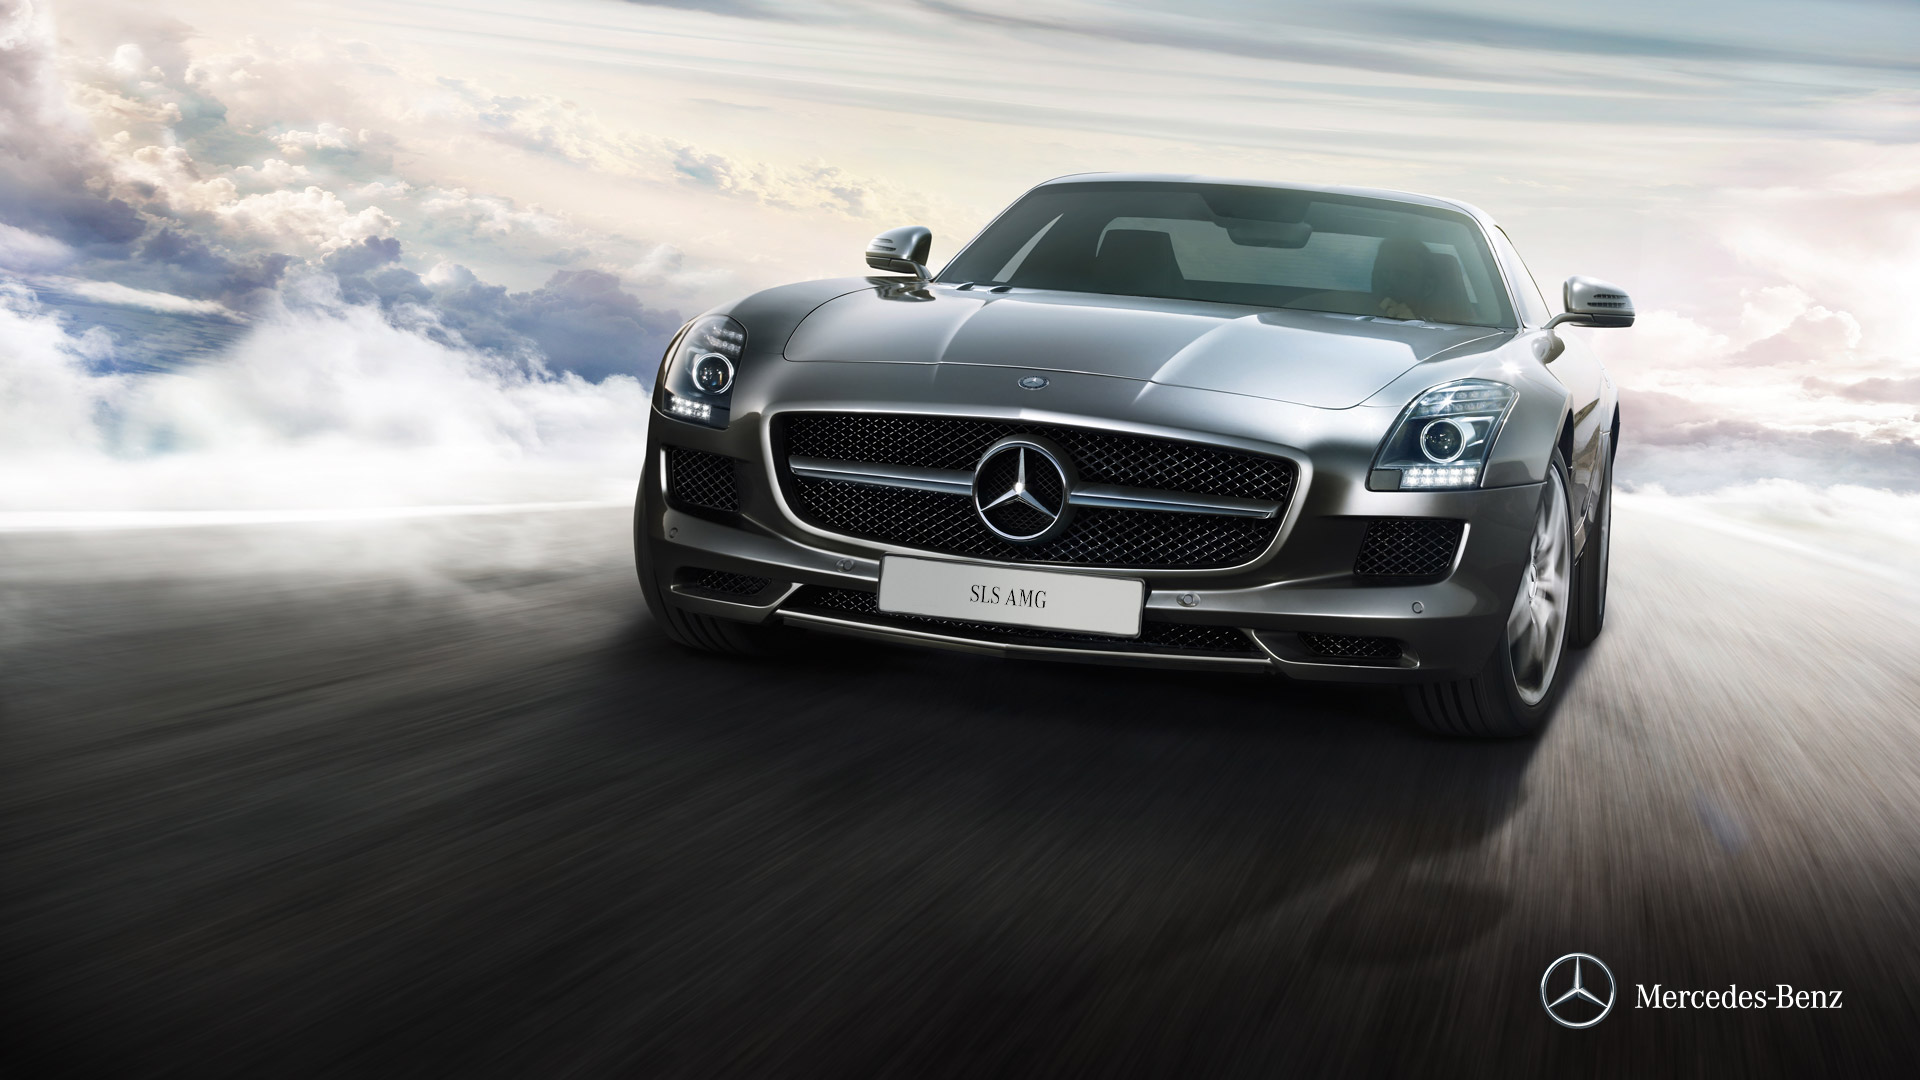 Mercedes Benz Wallpaper 20 1920x1080